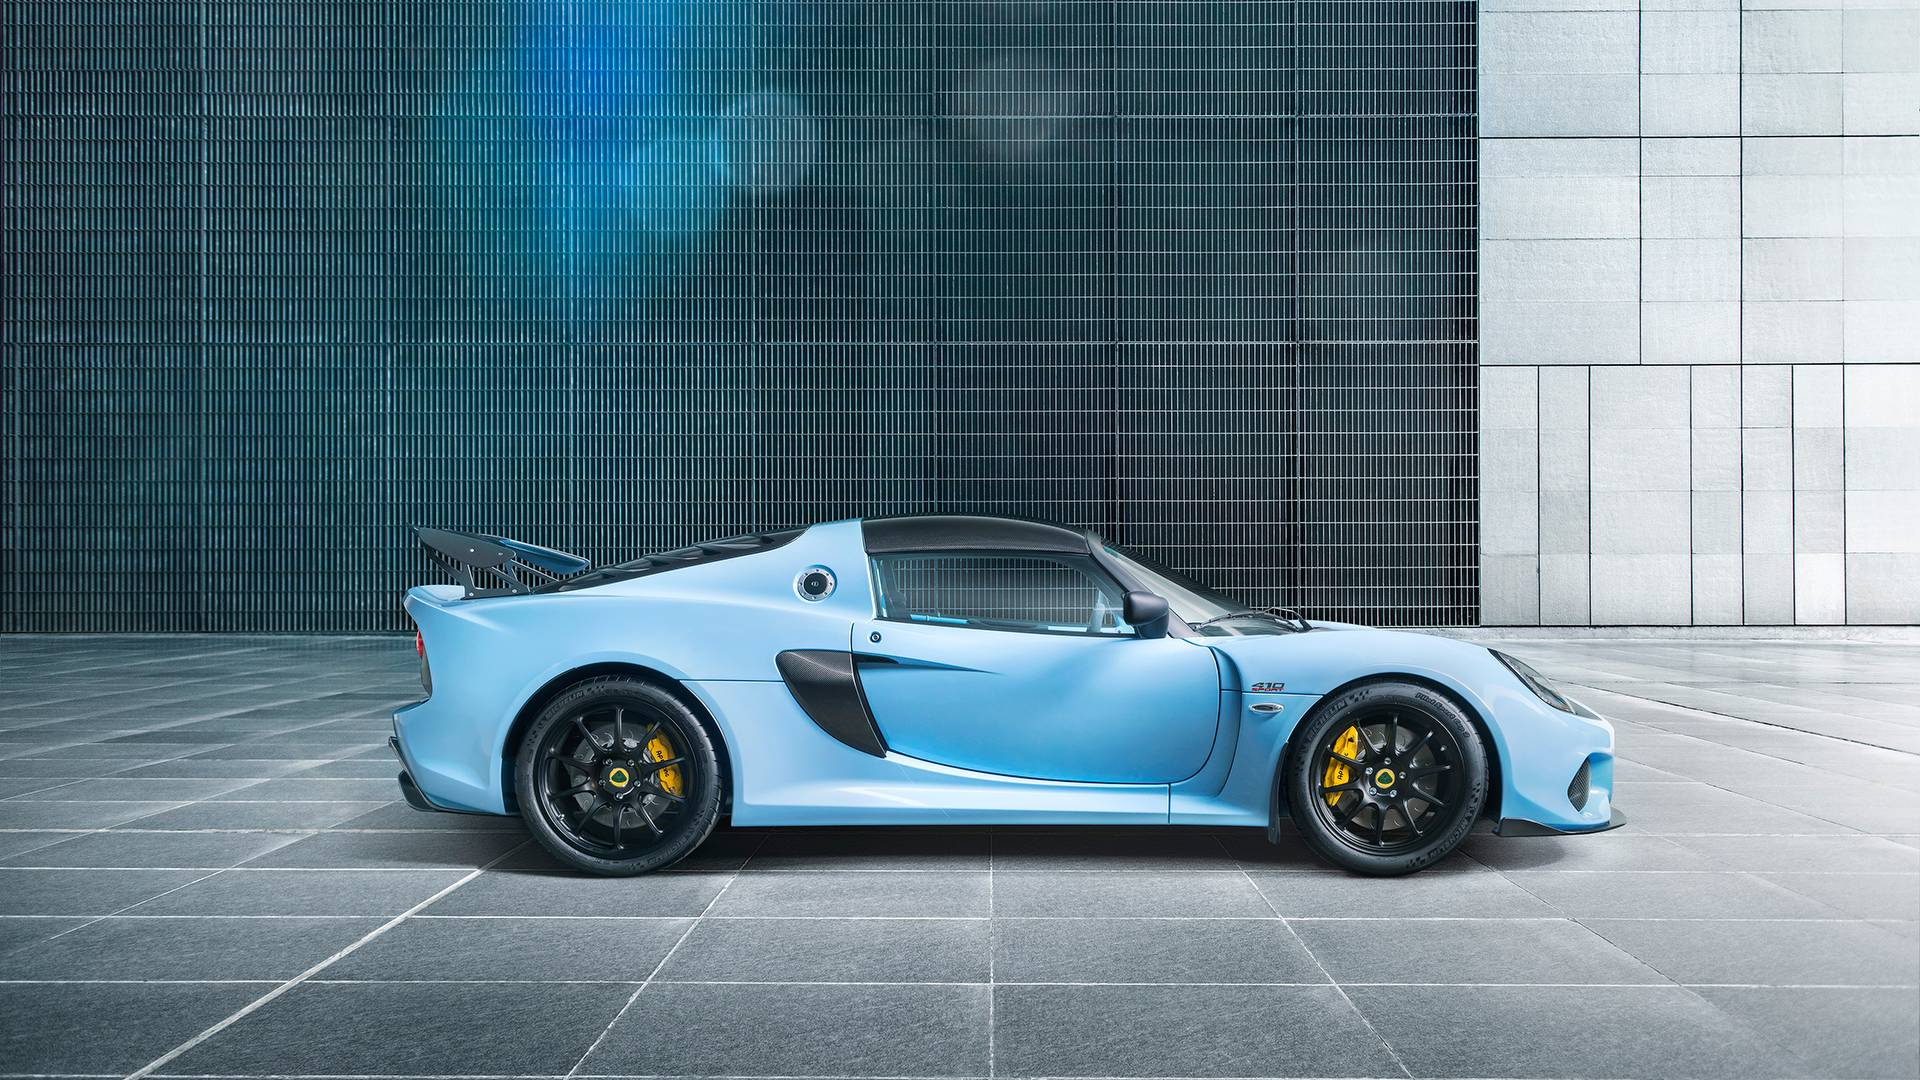 Lotus launches new 'ultimate road car'